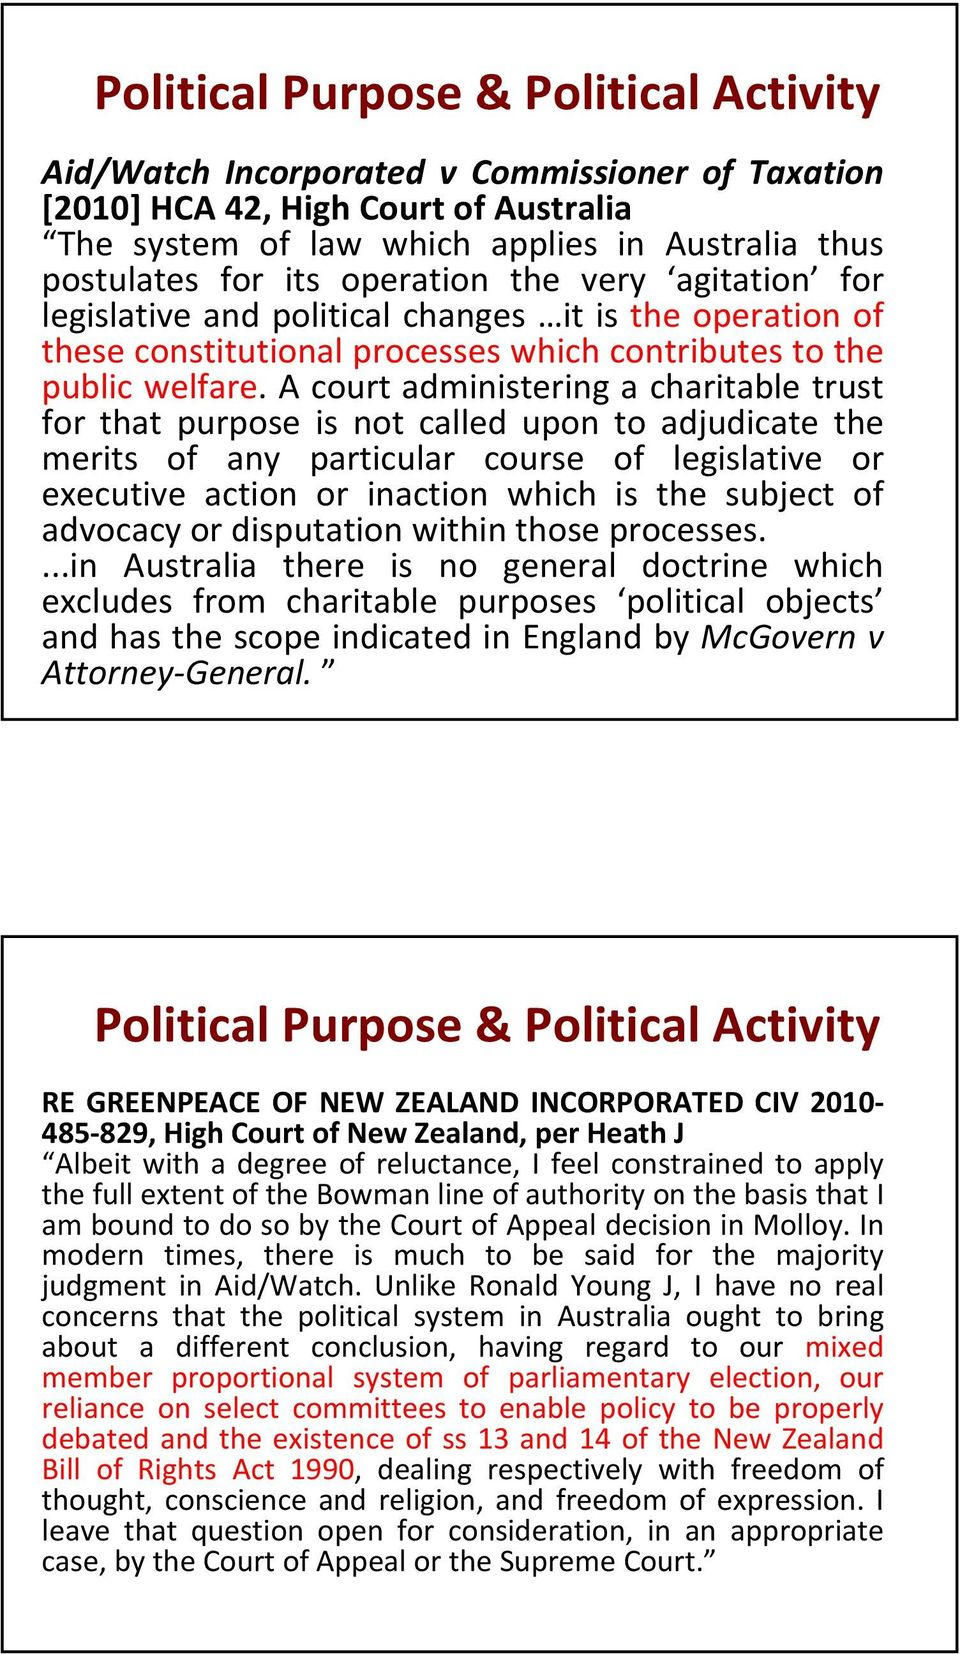 A court administering a charitable trust for that purpose is not called upon to adjudicate the merits of any particular course of legislative or executive action or inaction which is the subject of